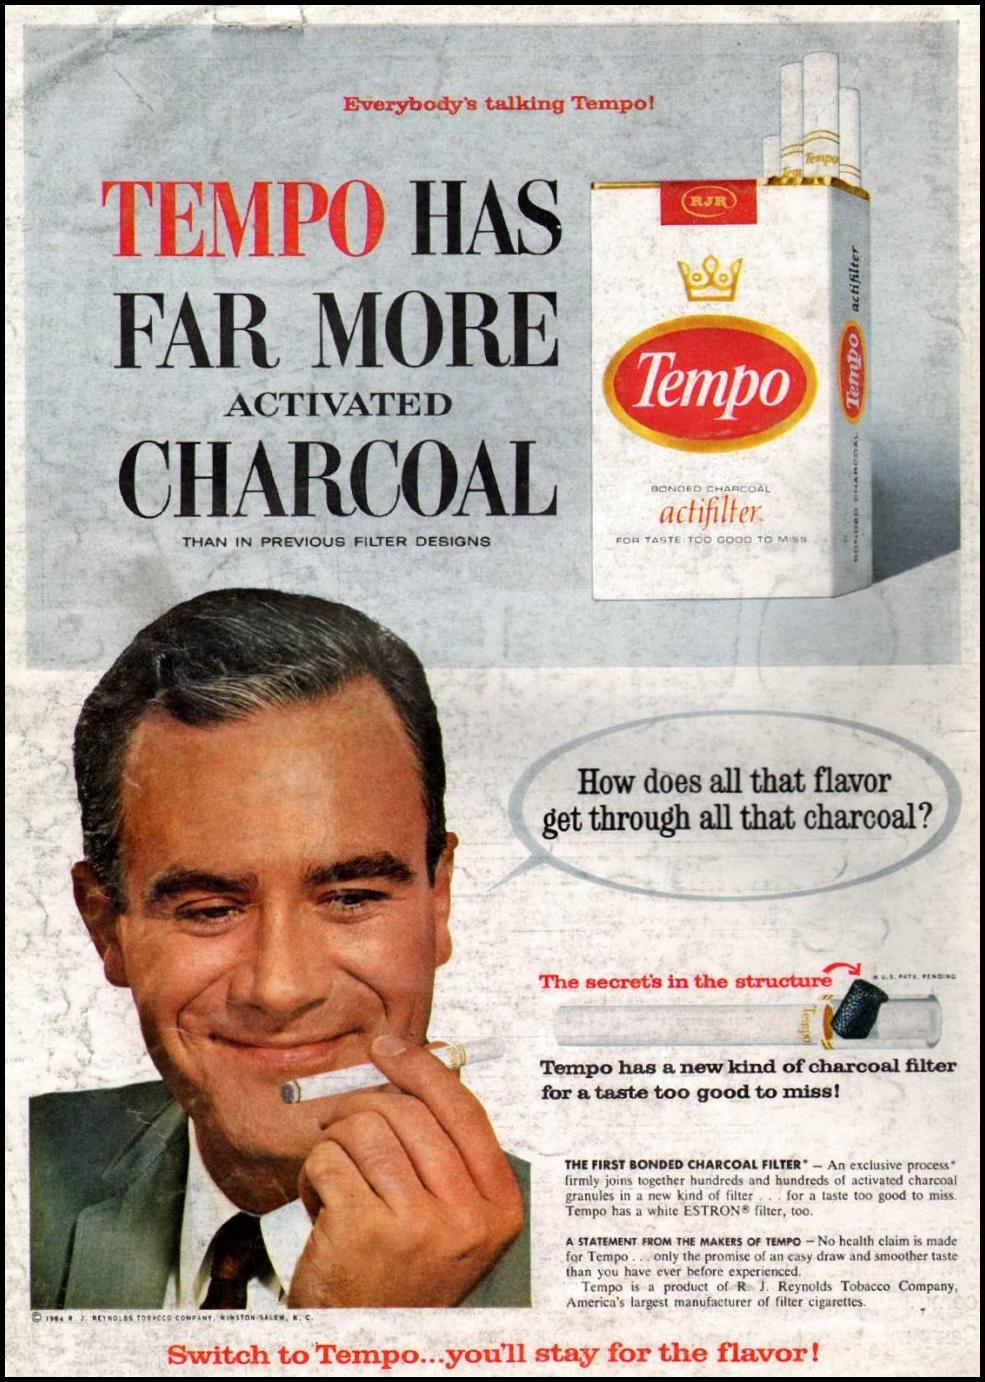 TEMPO CIGARETTES NEWSWEEK 08/24/1964 BACK COVER